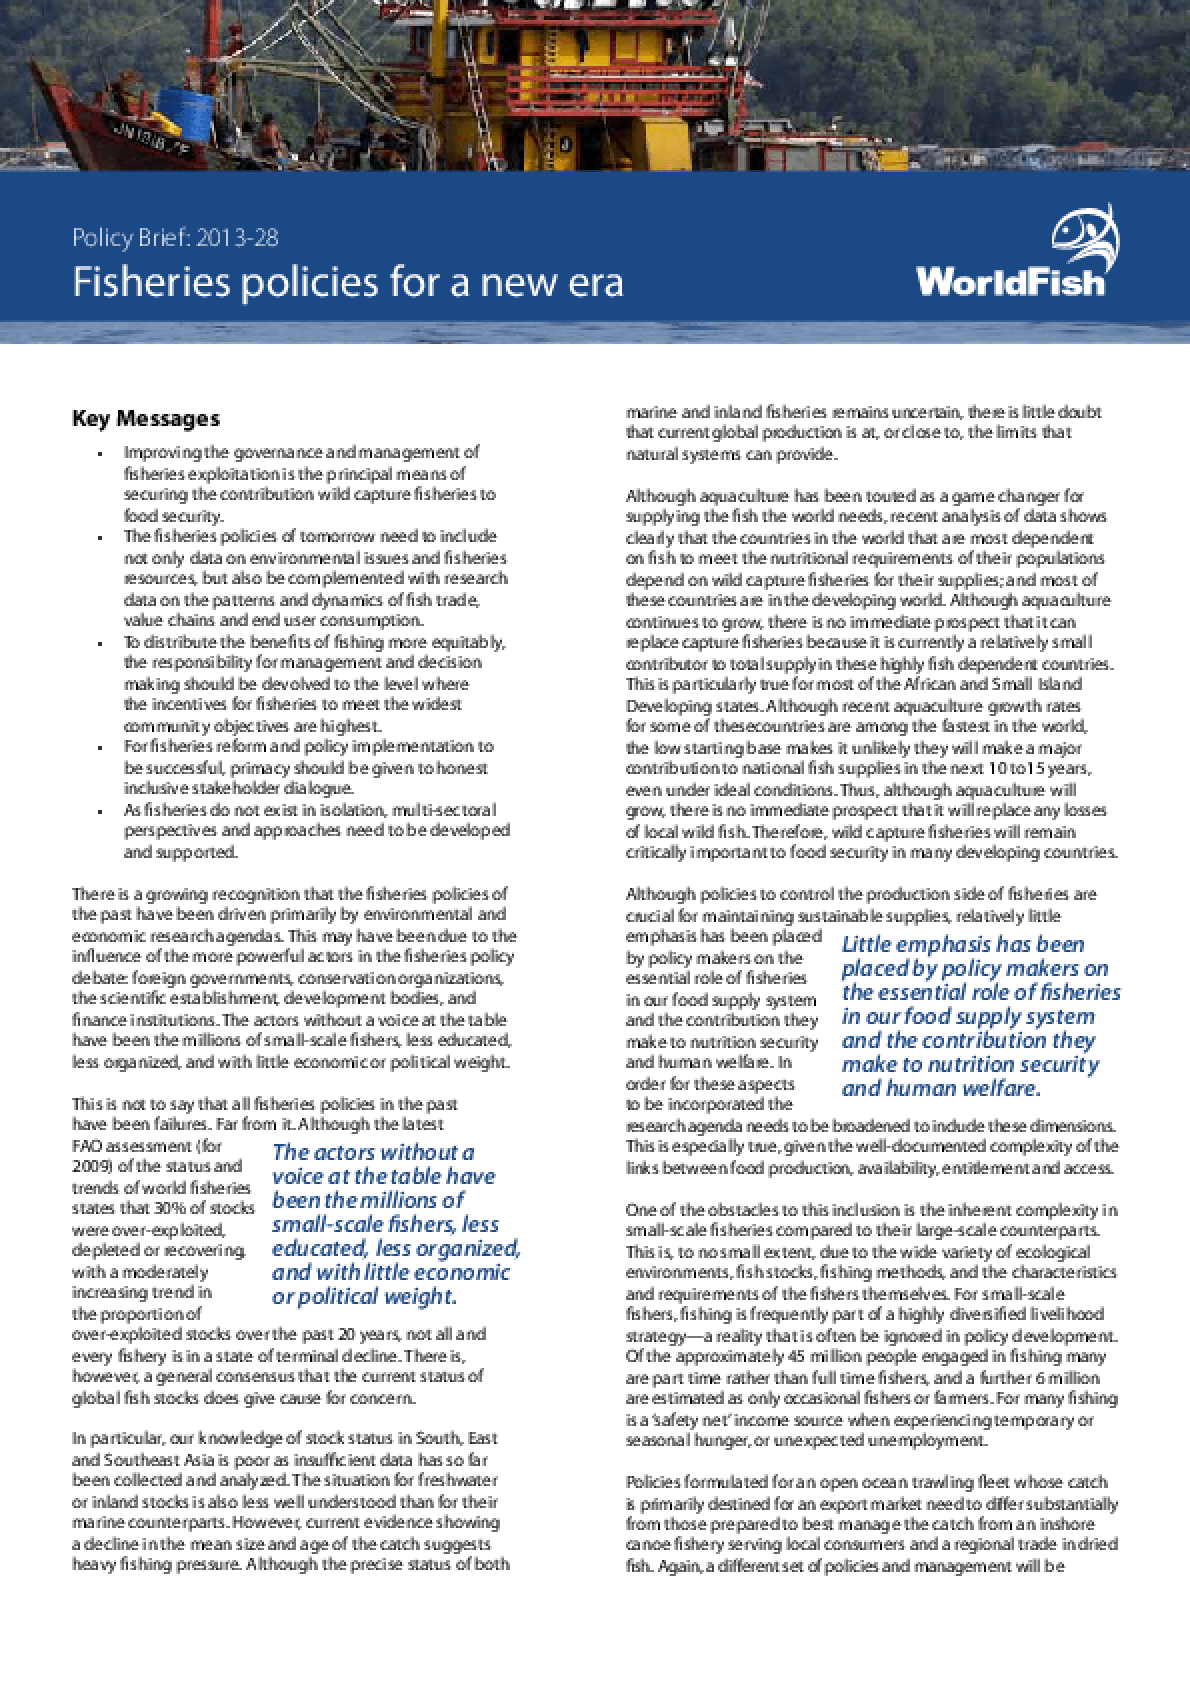 Fisheries policies for a new era